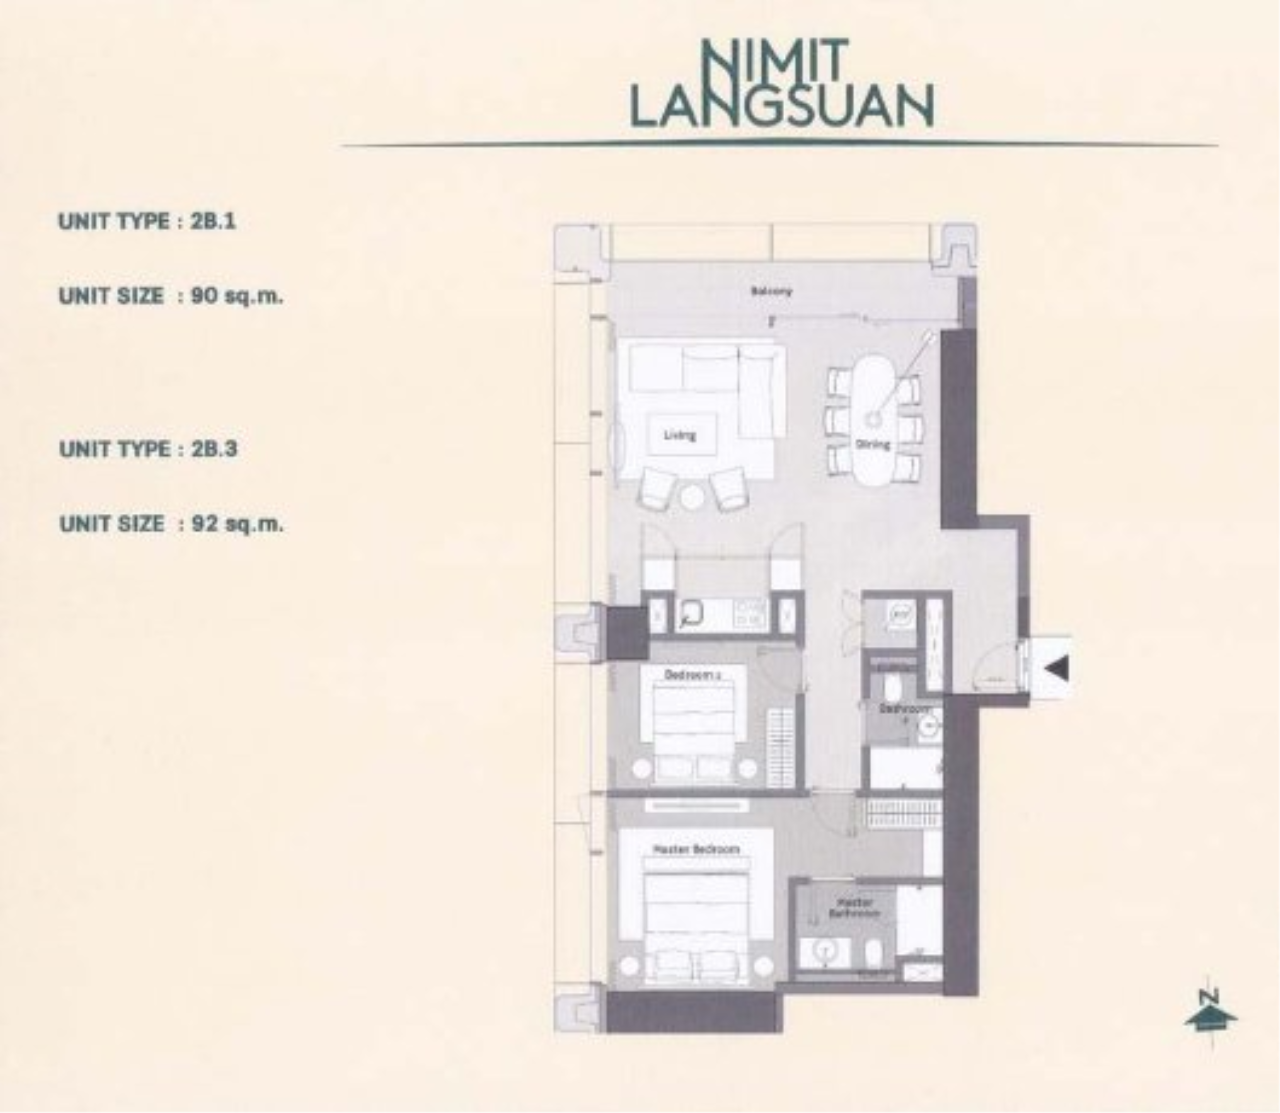 Piri Property Agency's Modern 2 Bedrooms in the Nimit Langsuan Condo for sale on high floor 3